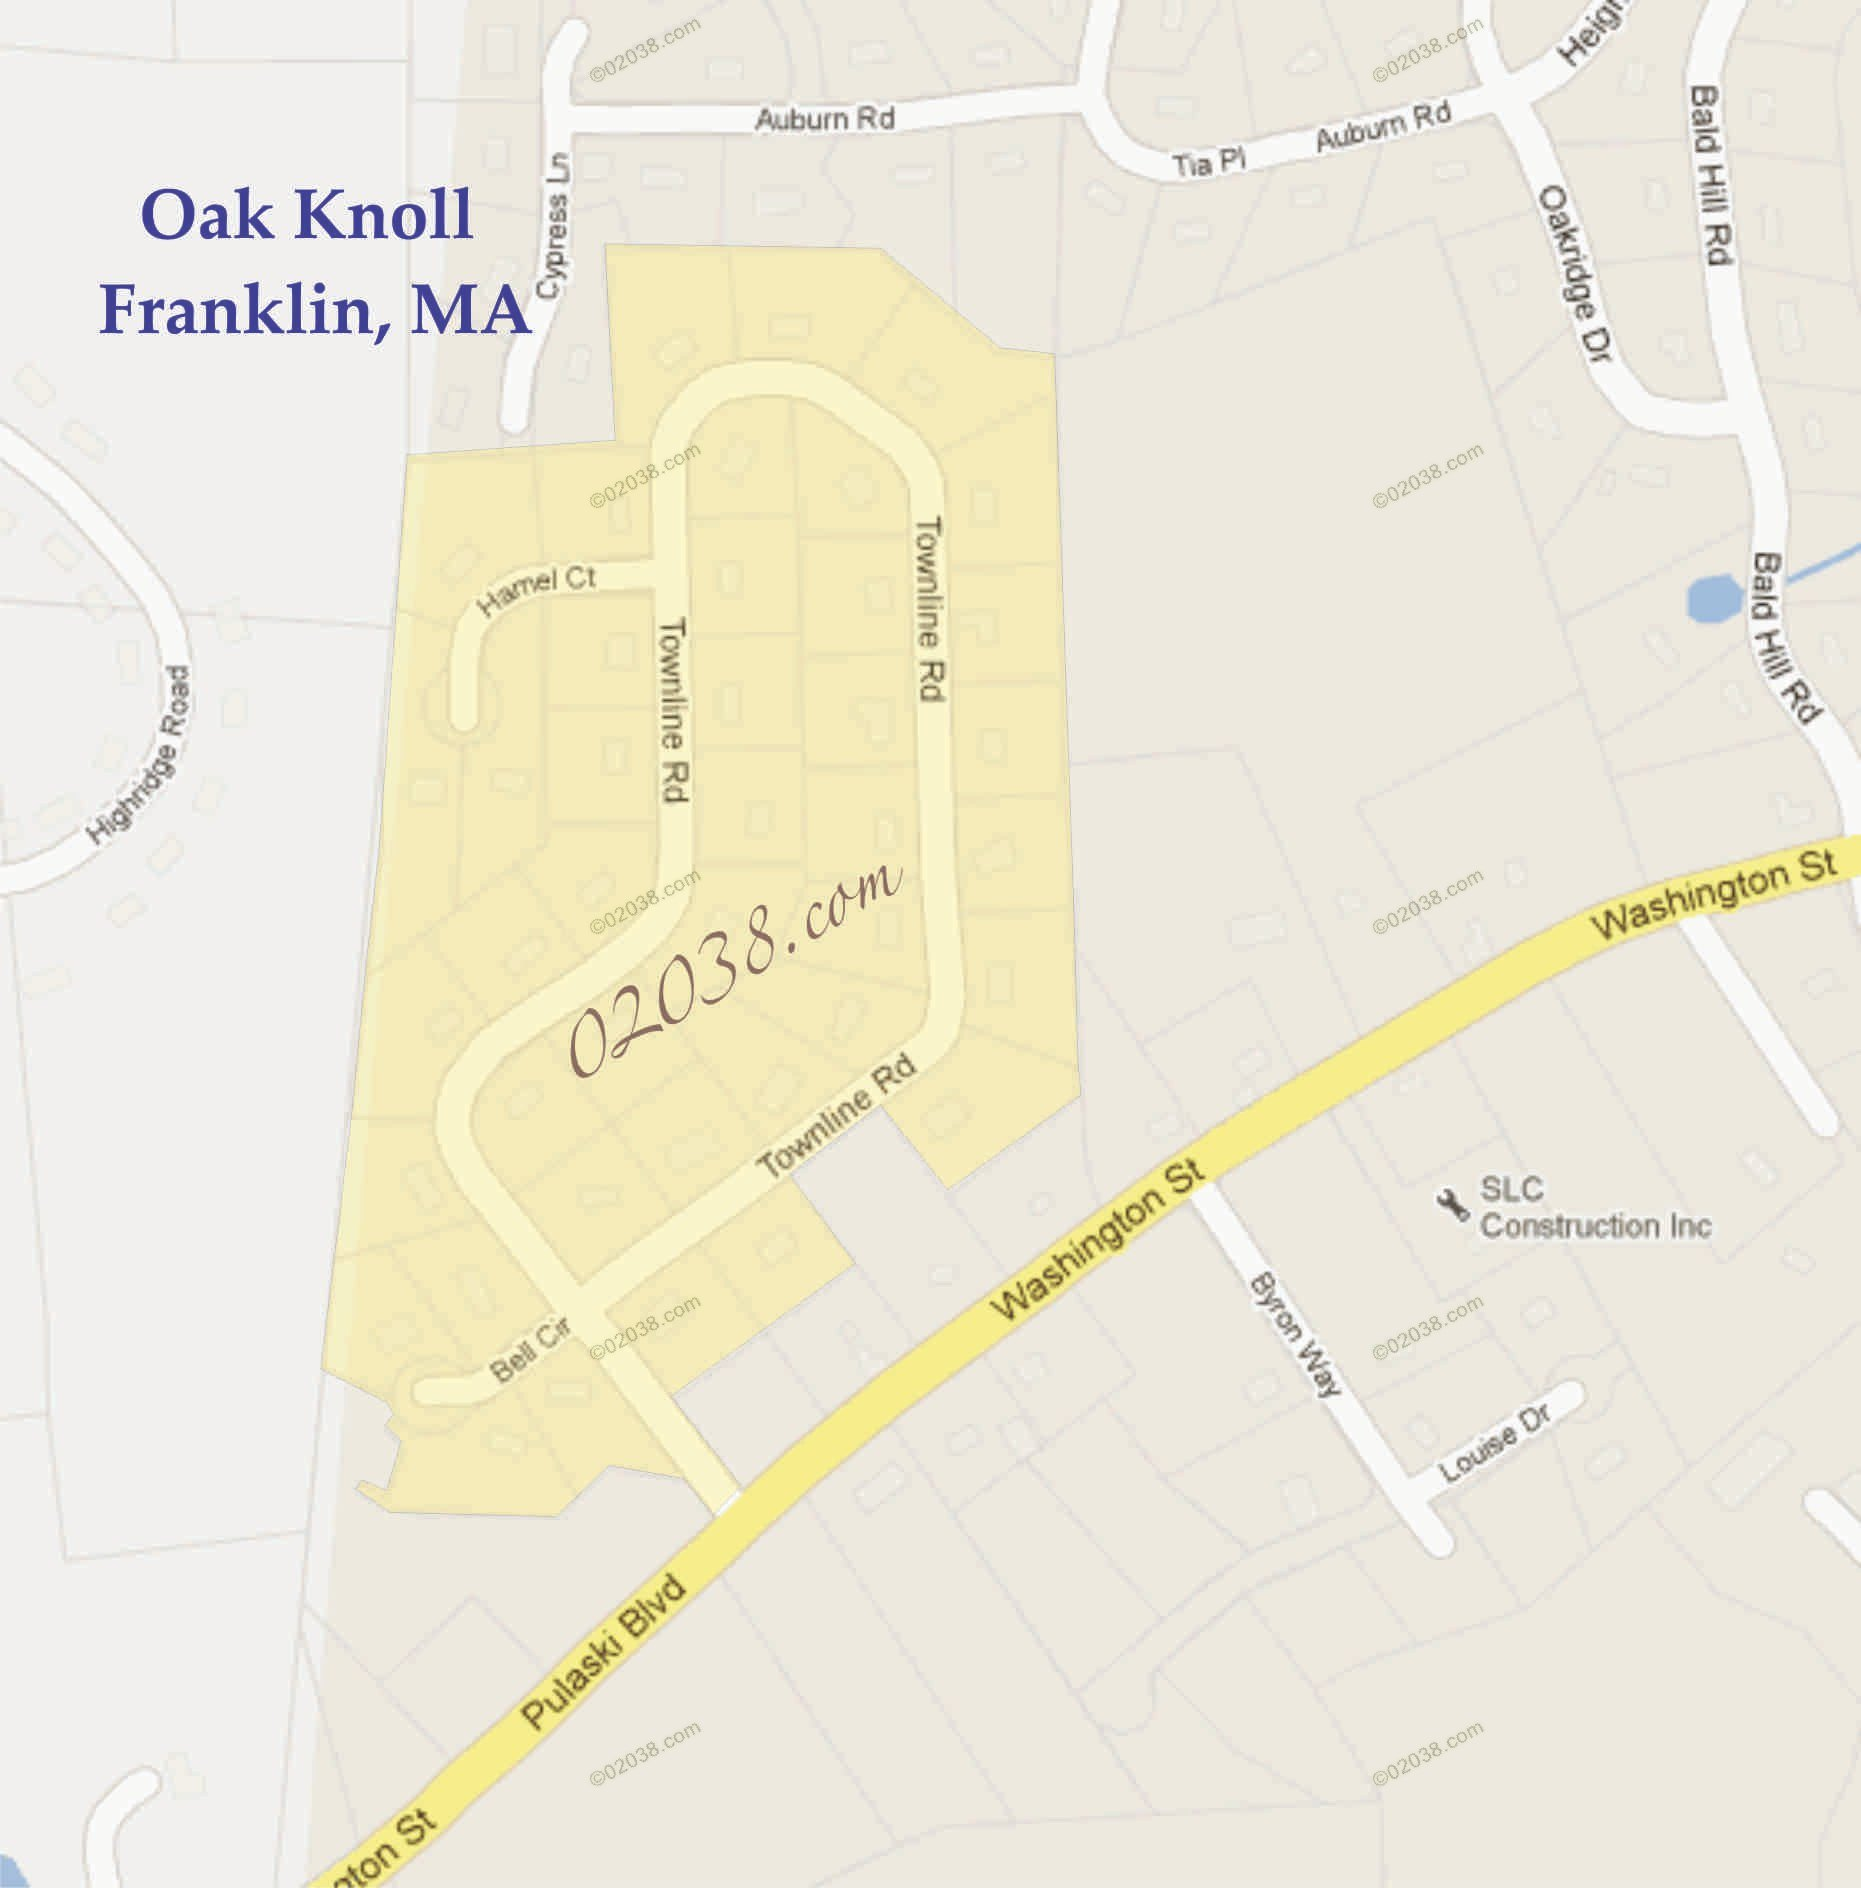 oak knoll franklin ma map2